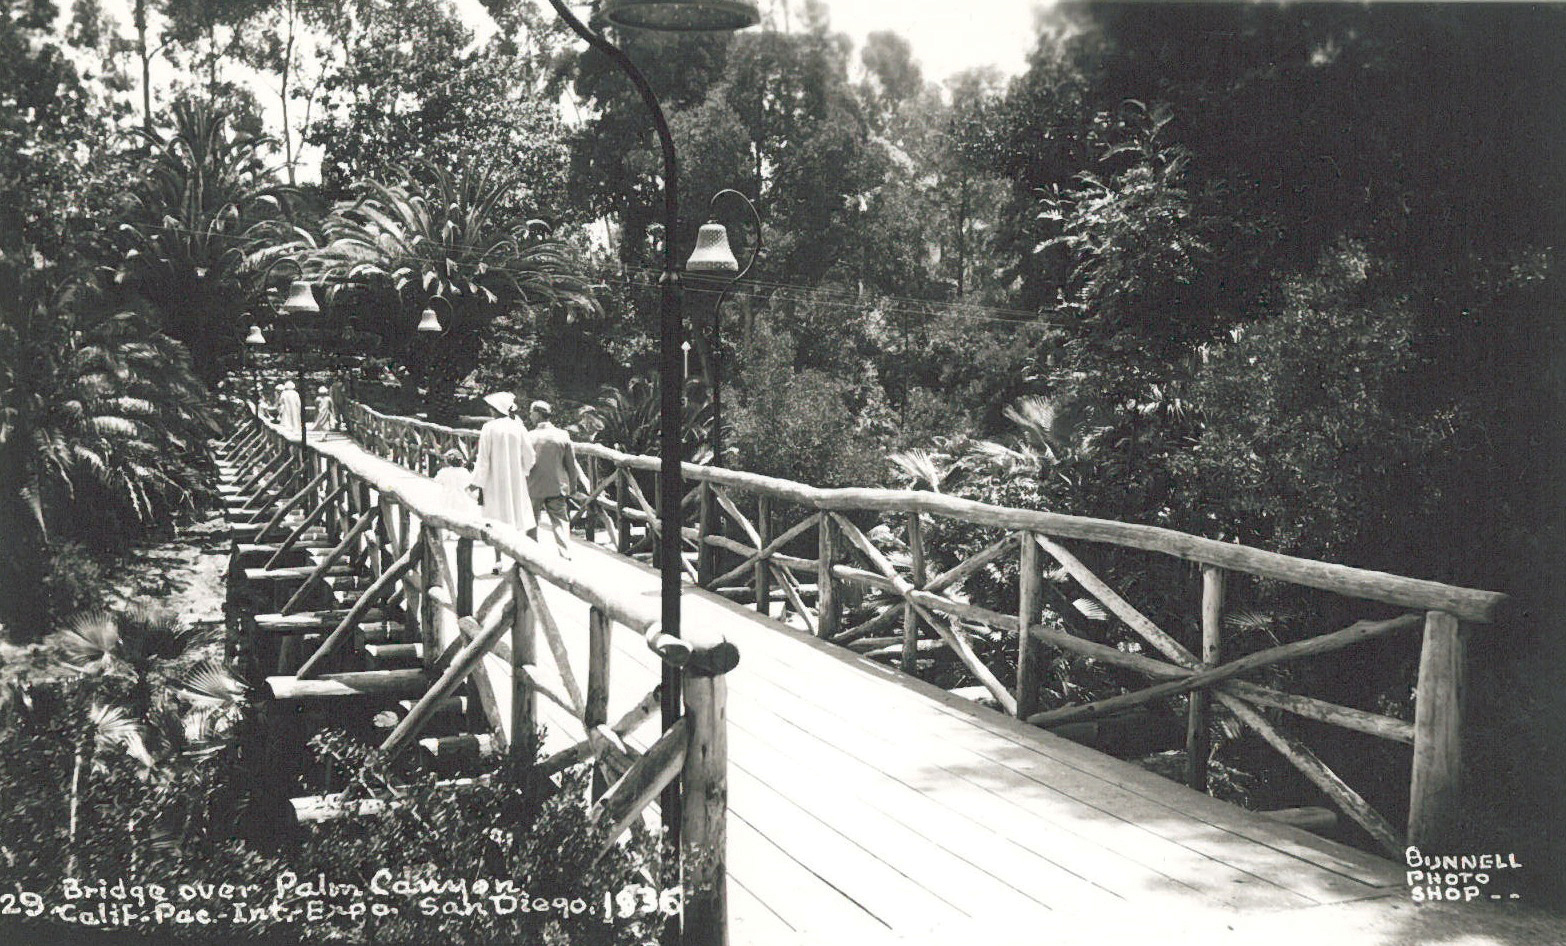 Palm Canyon footbridge